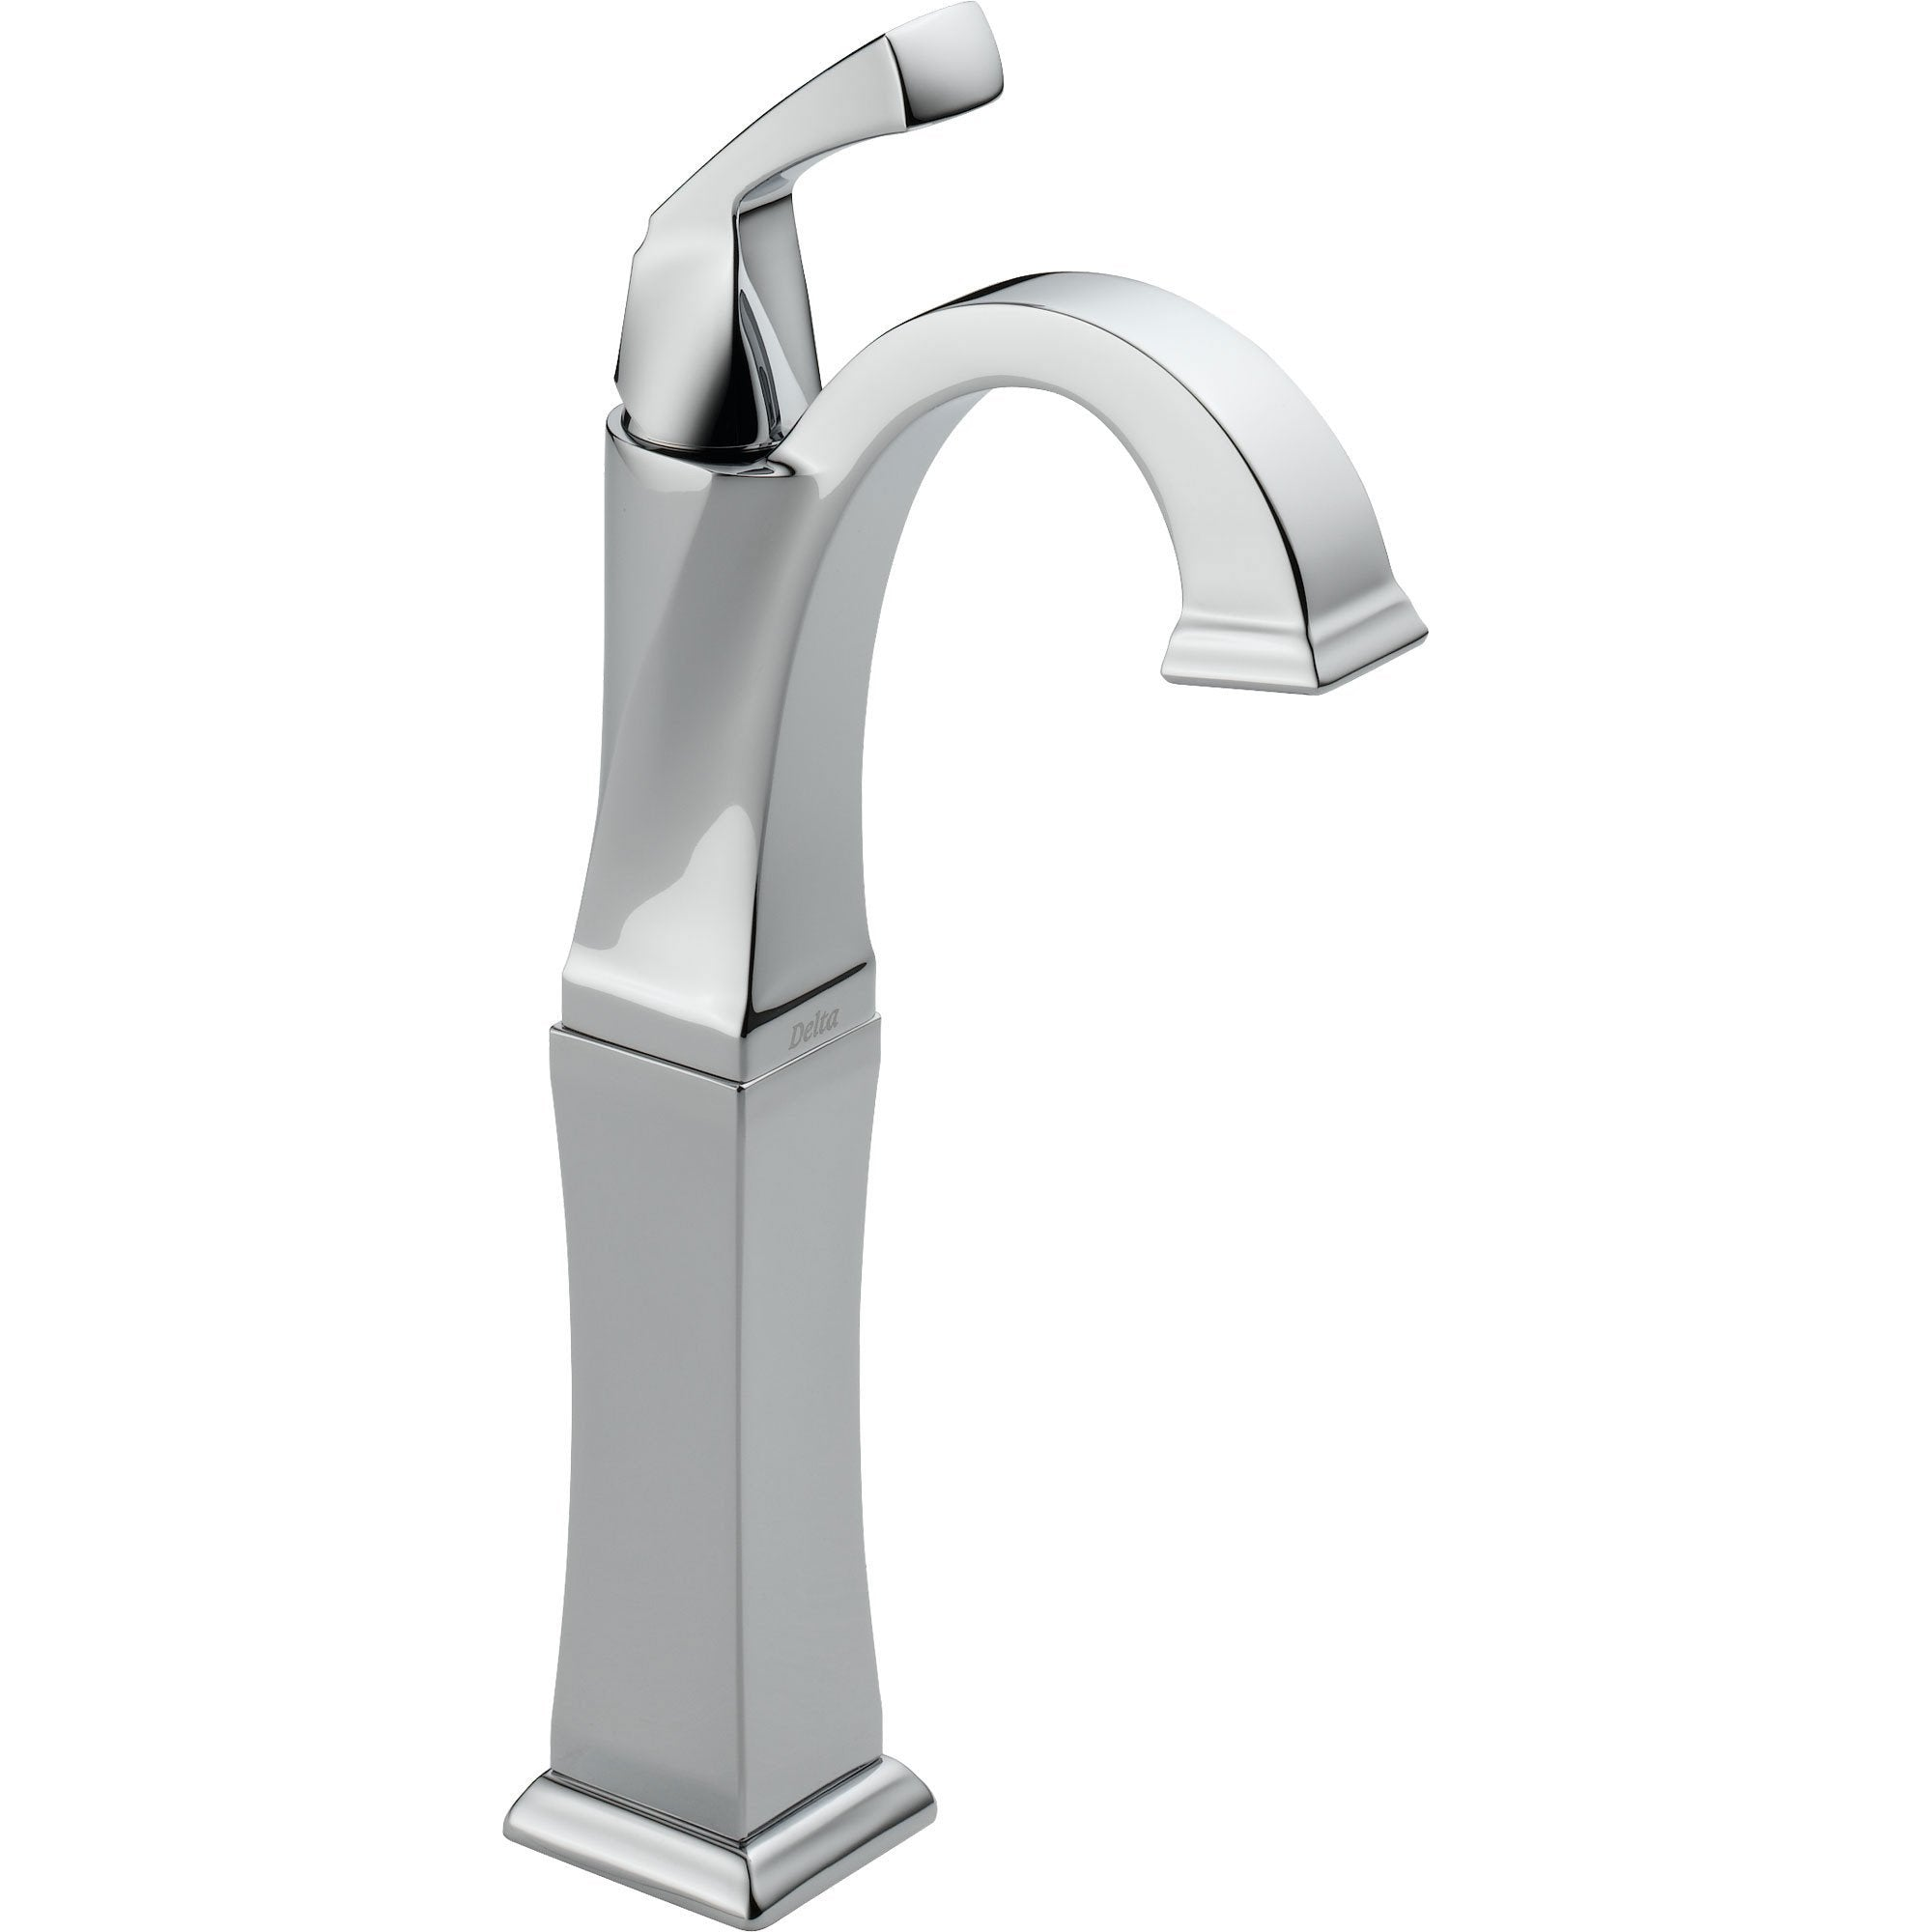 Delta Dryden Single Handle Chrome Finish Tall Vessel Sink Bathroom Faucet 495516